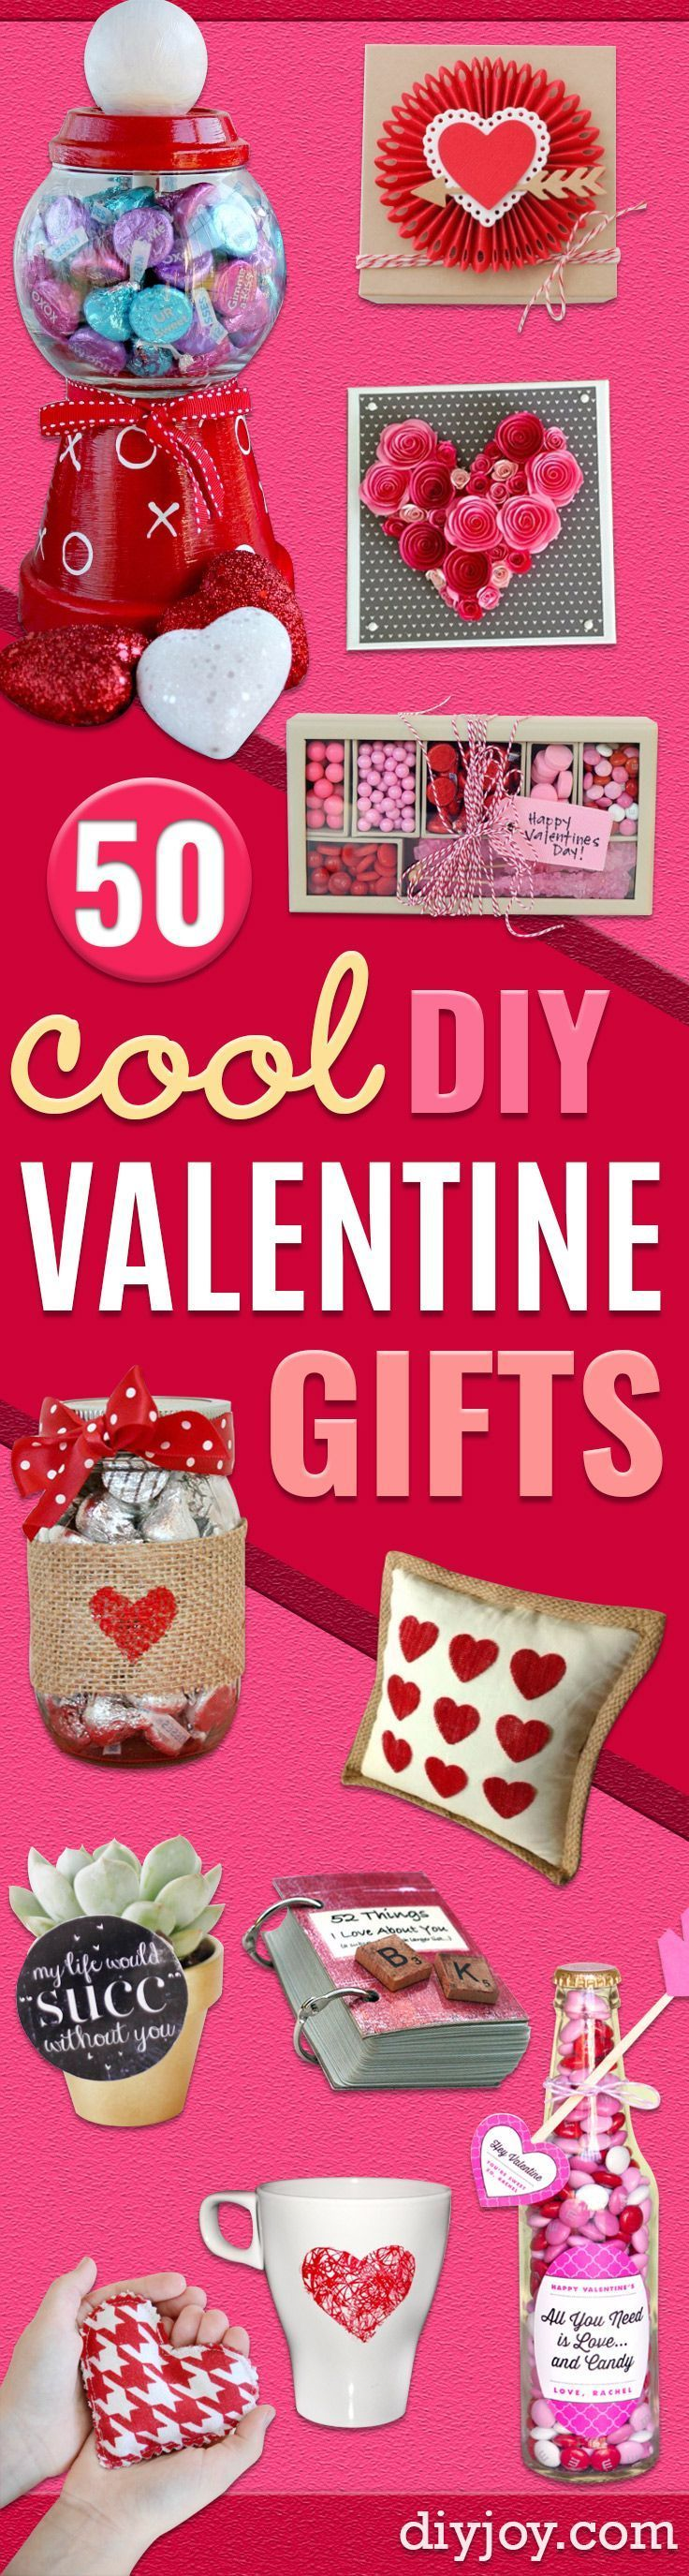 271 Best Images About Diy Gifts And Gift Basket Ideas On